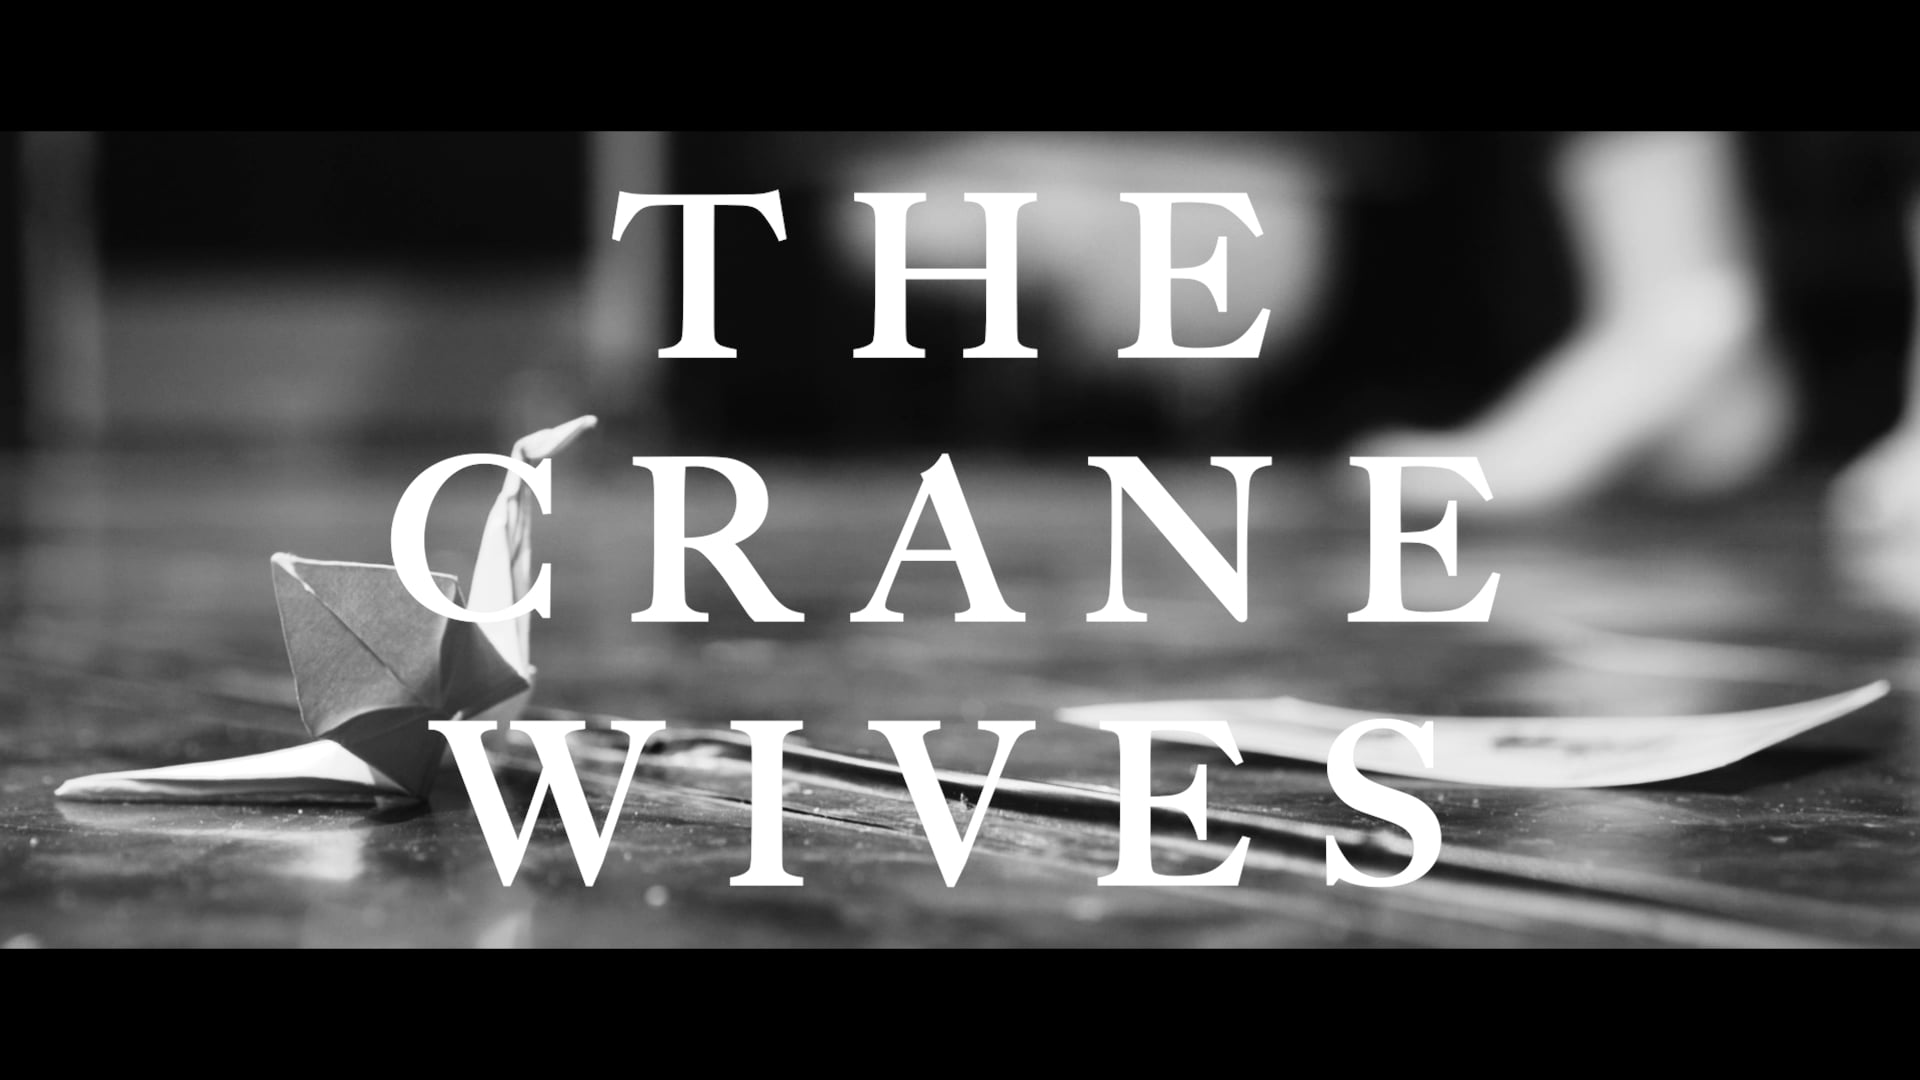 THE CRANE WIVES